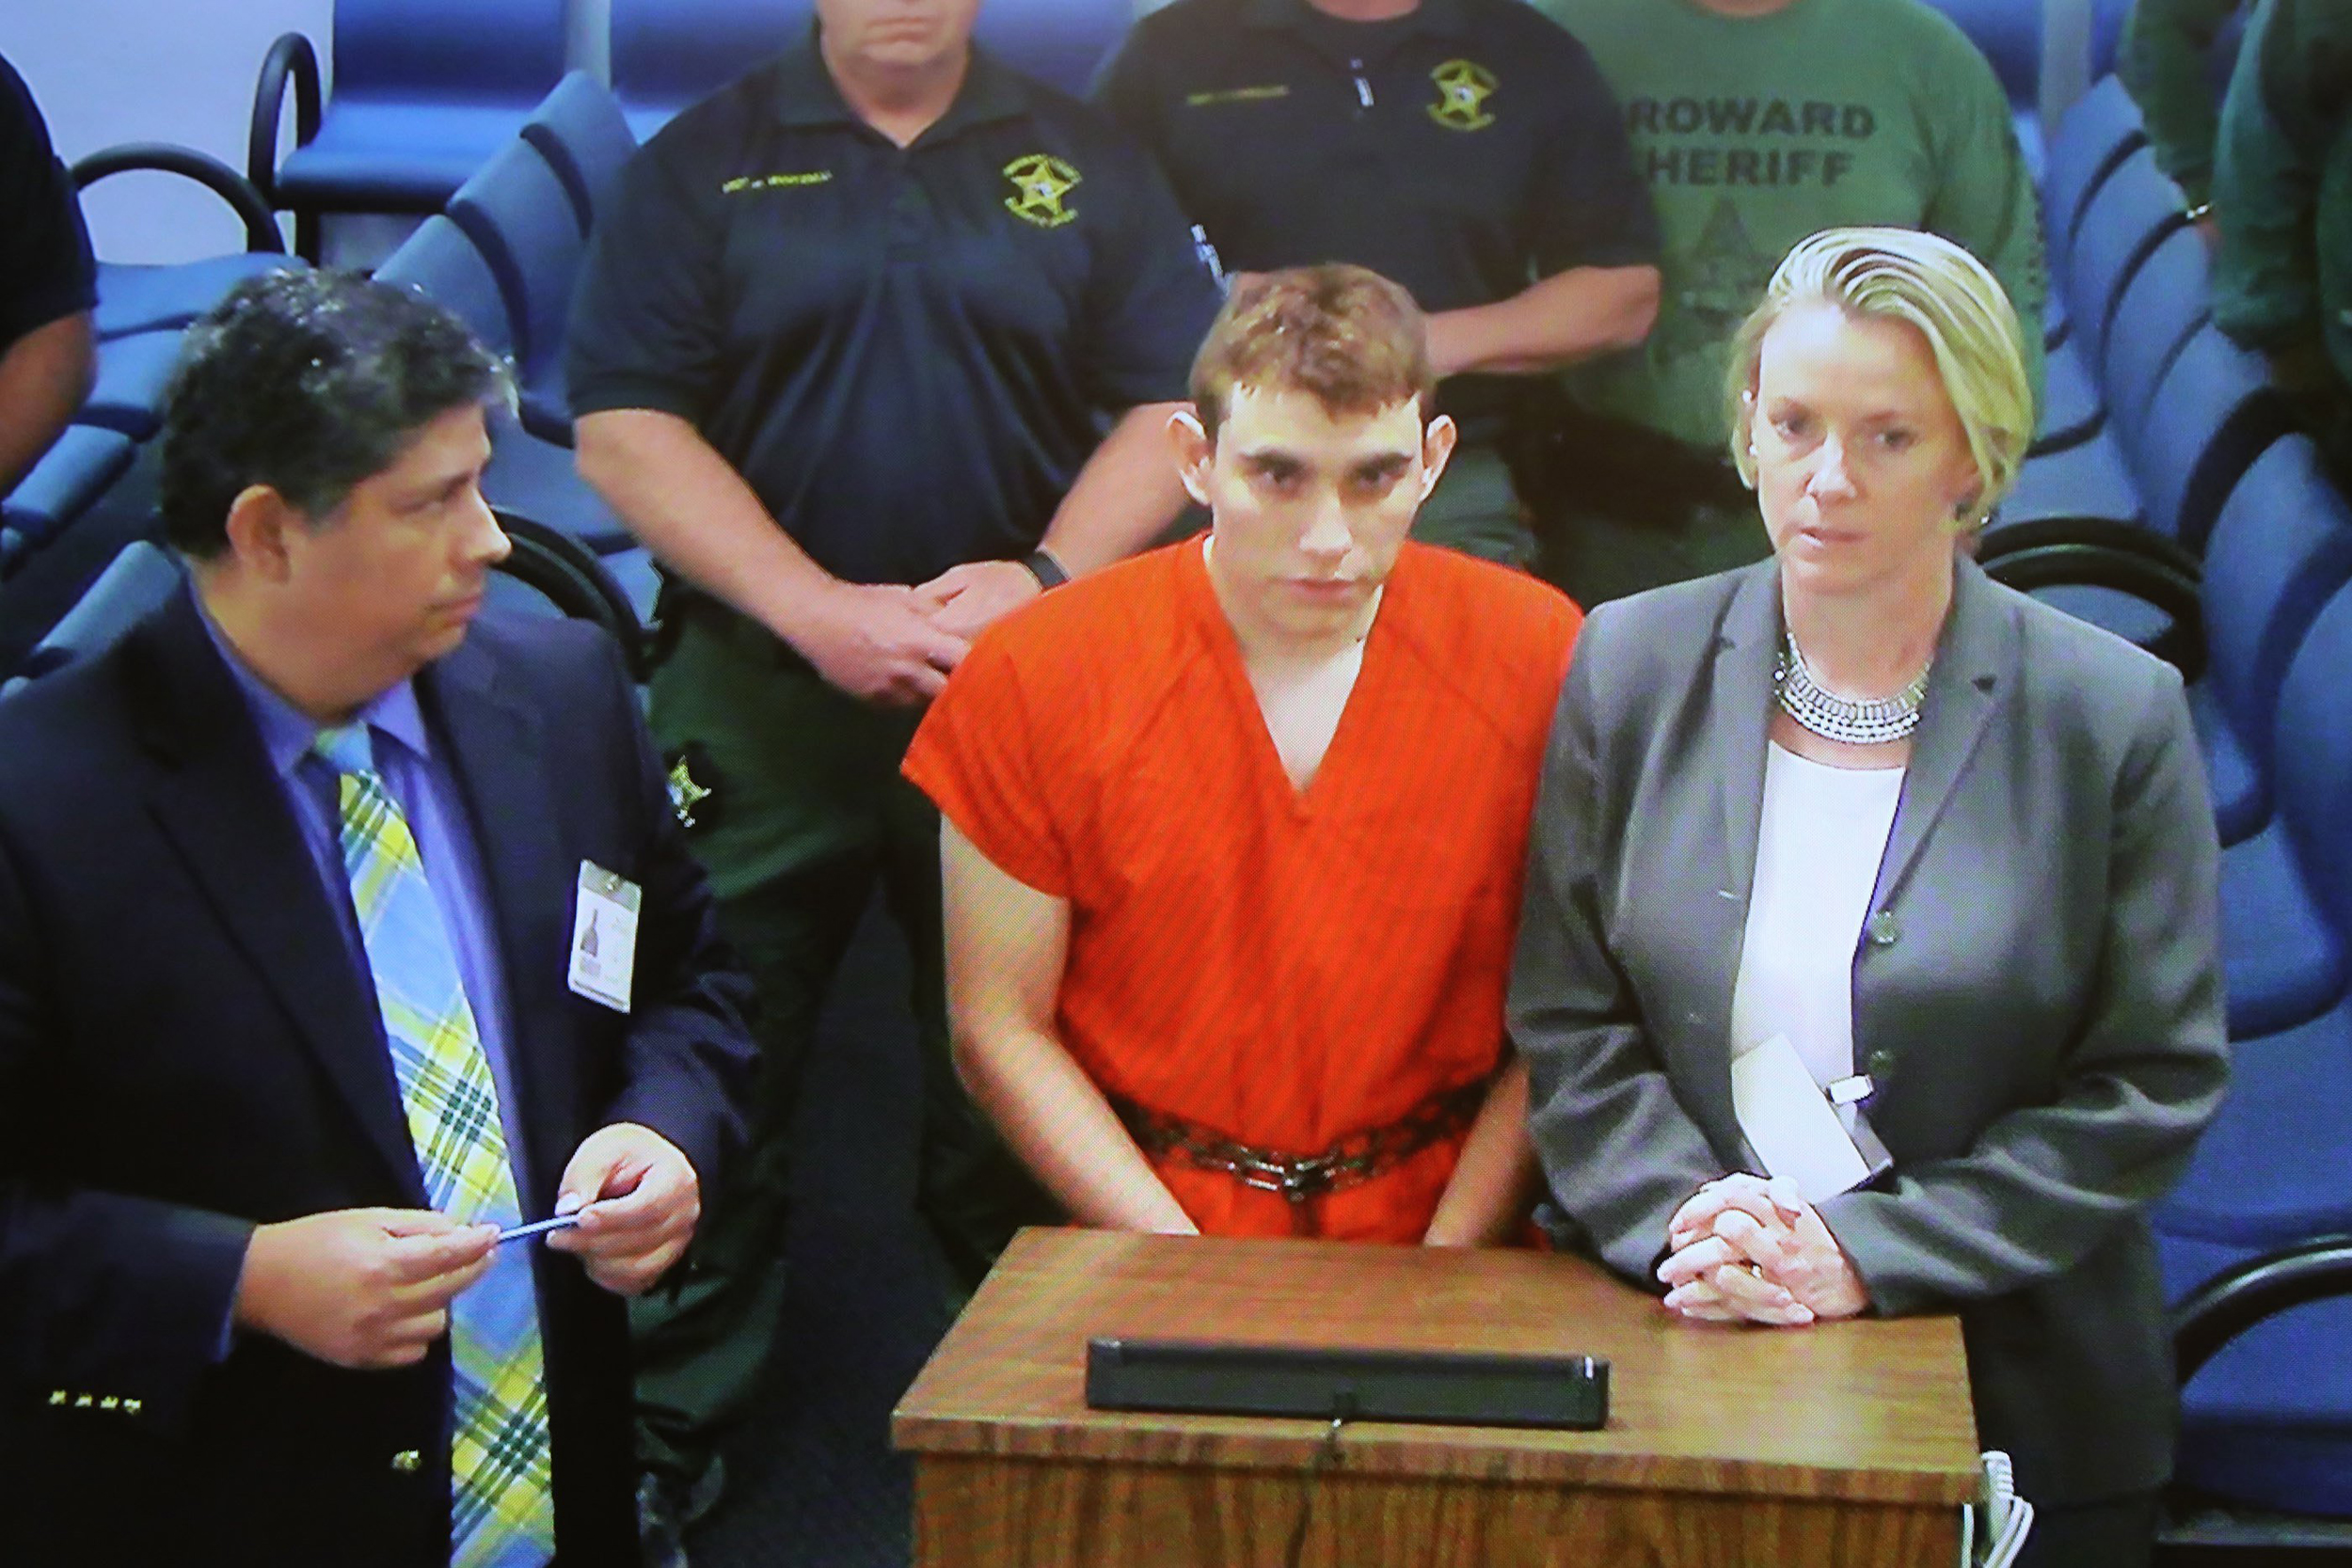 Comments by Nikolas Cruz's attorney could impact his defense